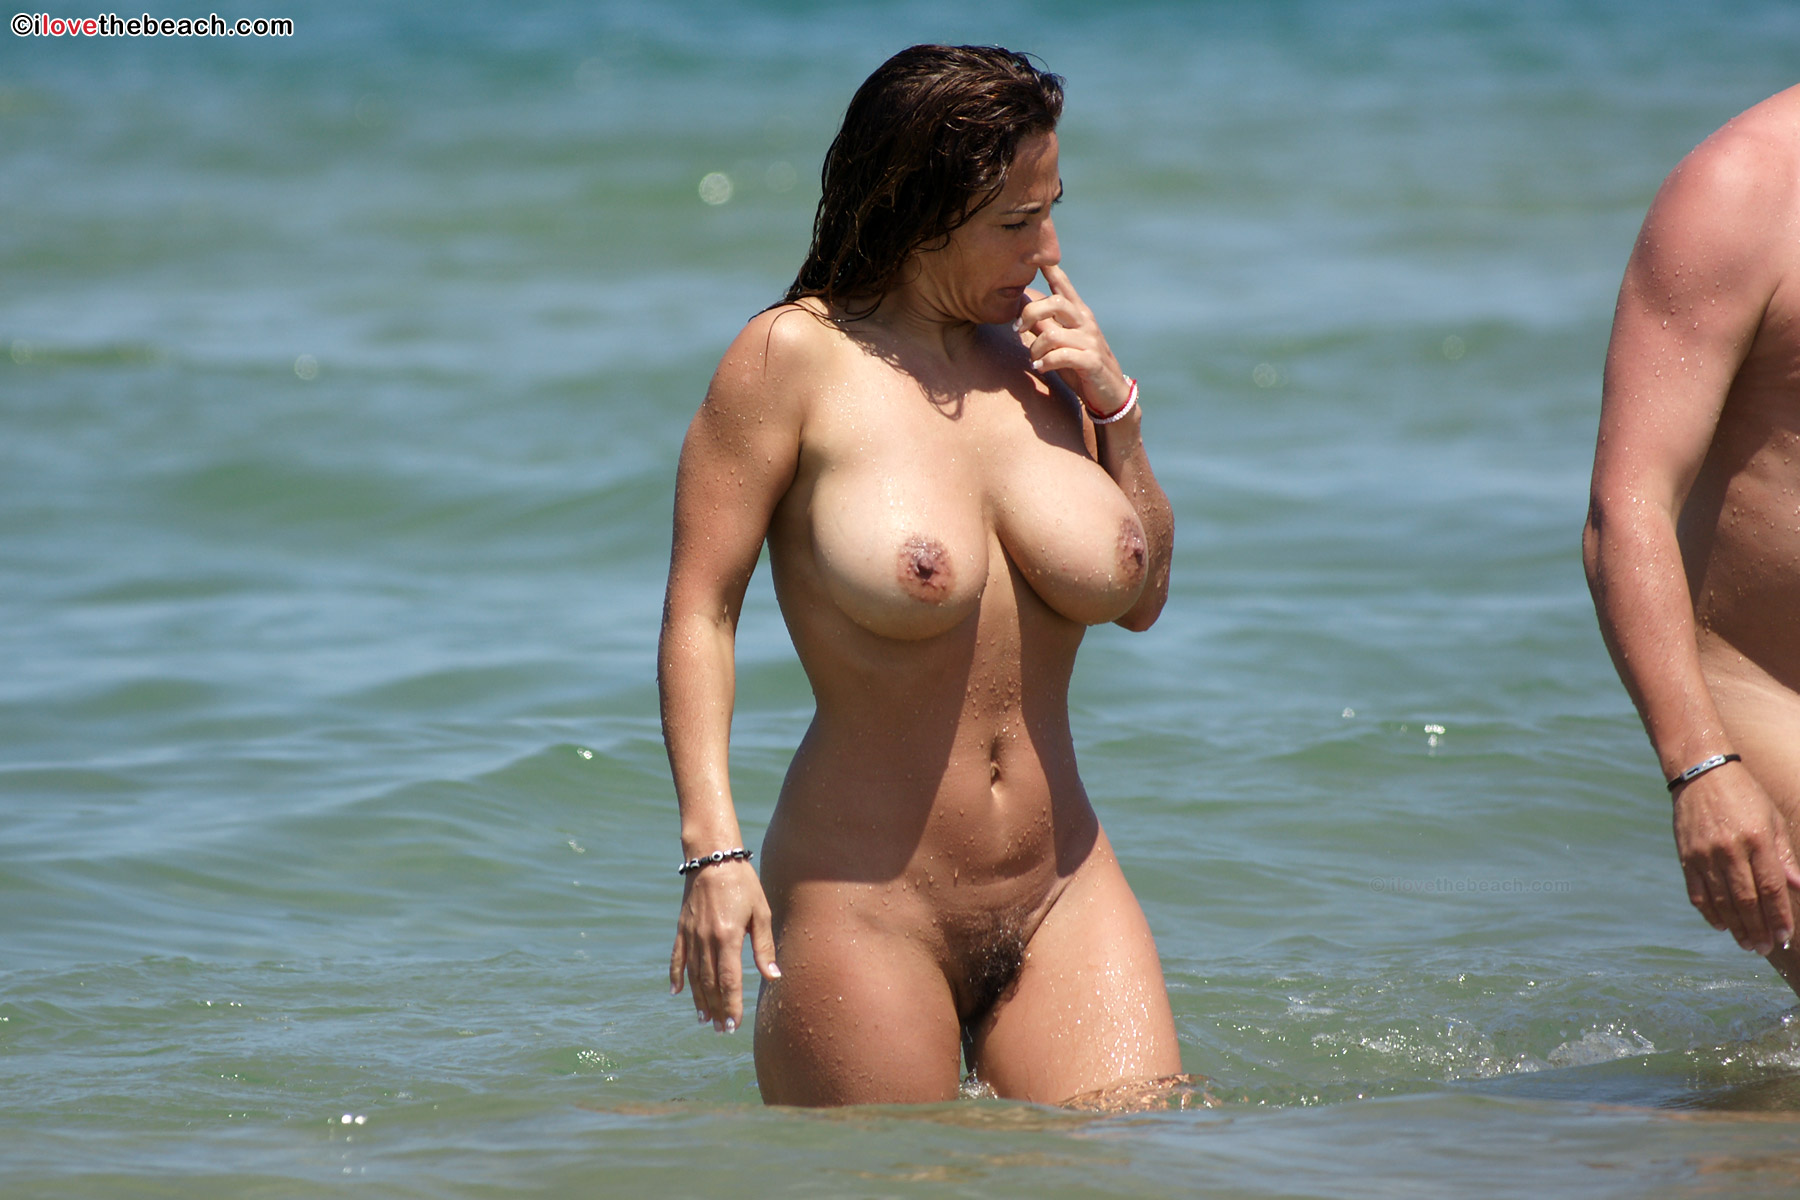 naked pictures of aussie beach babes - porn pics and movies